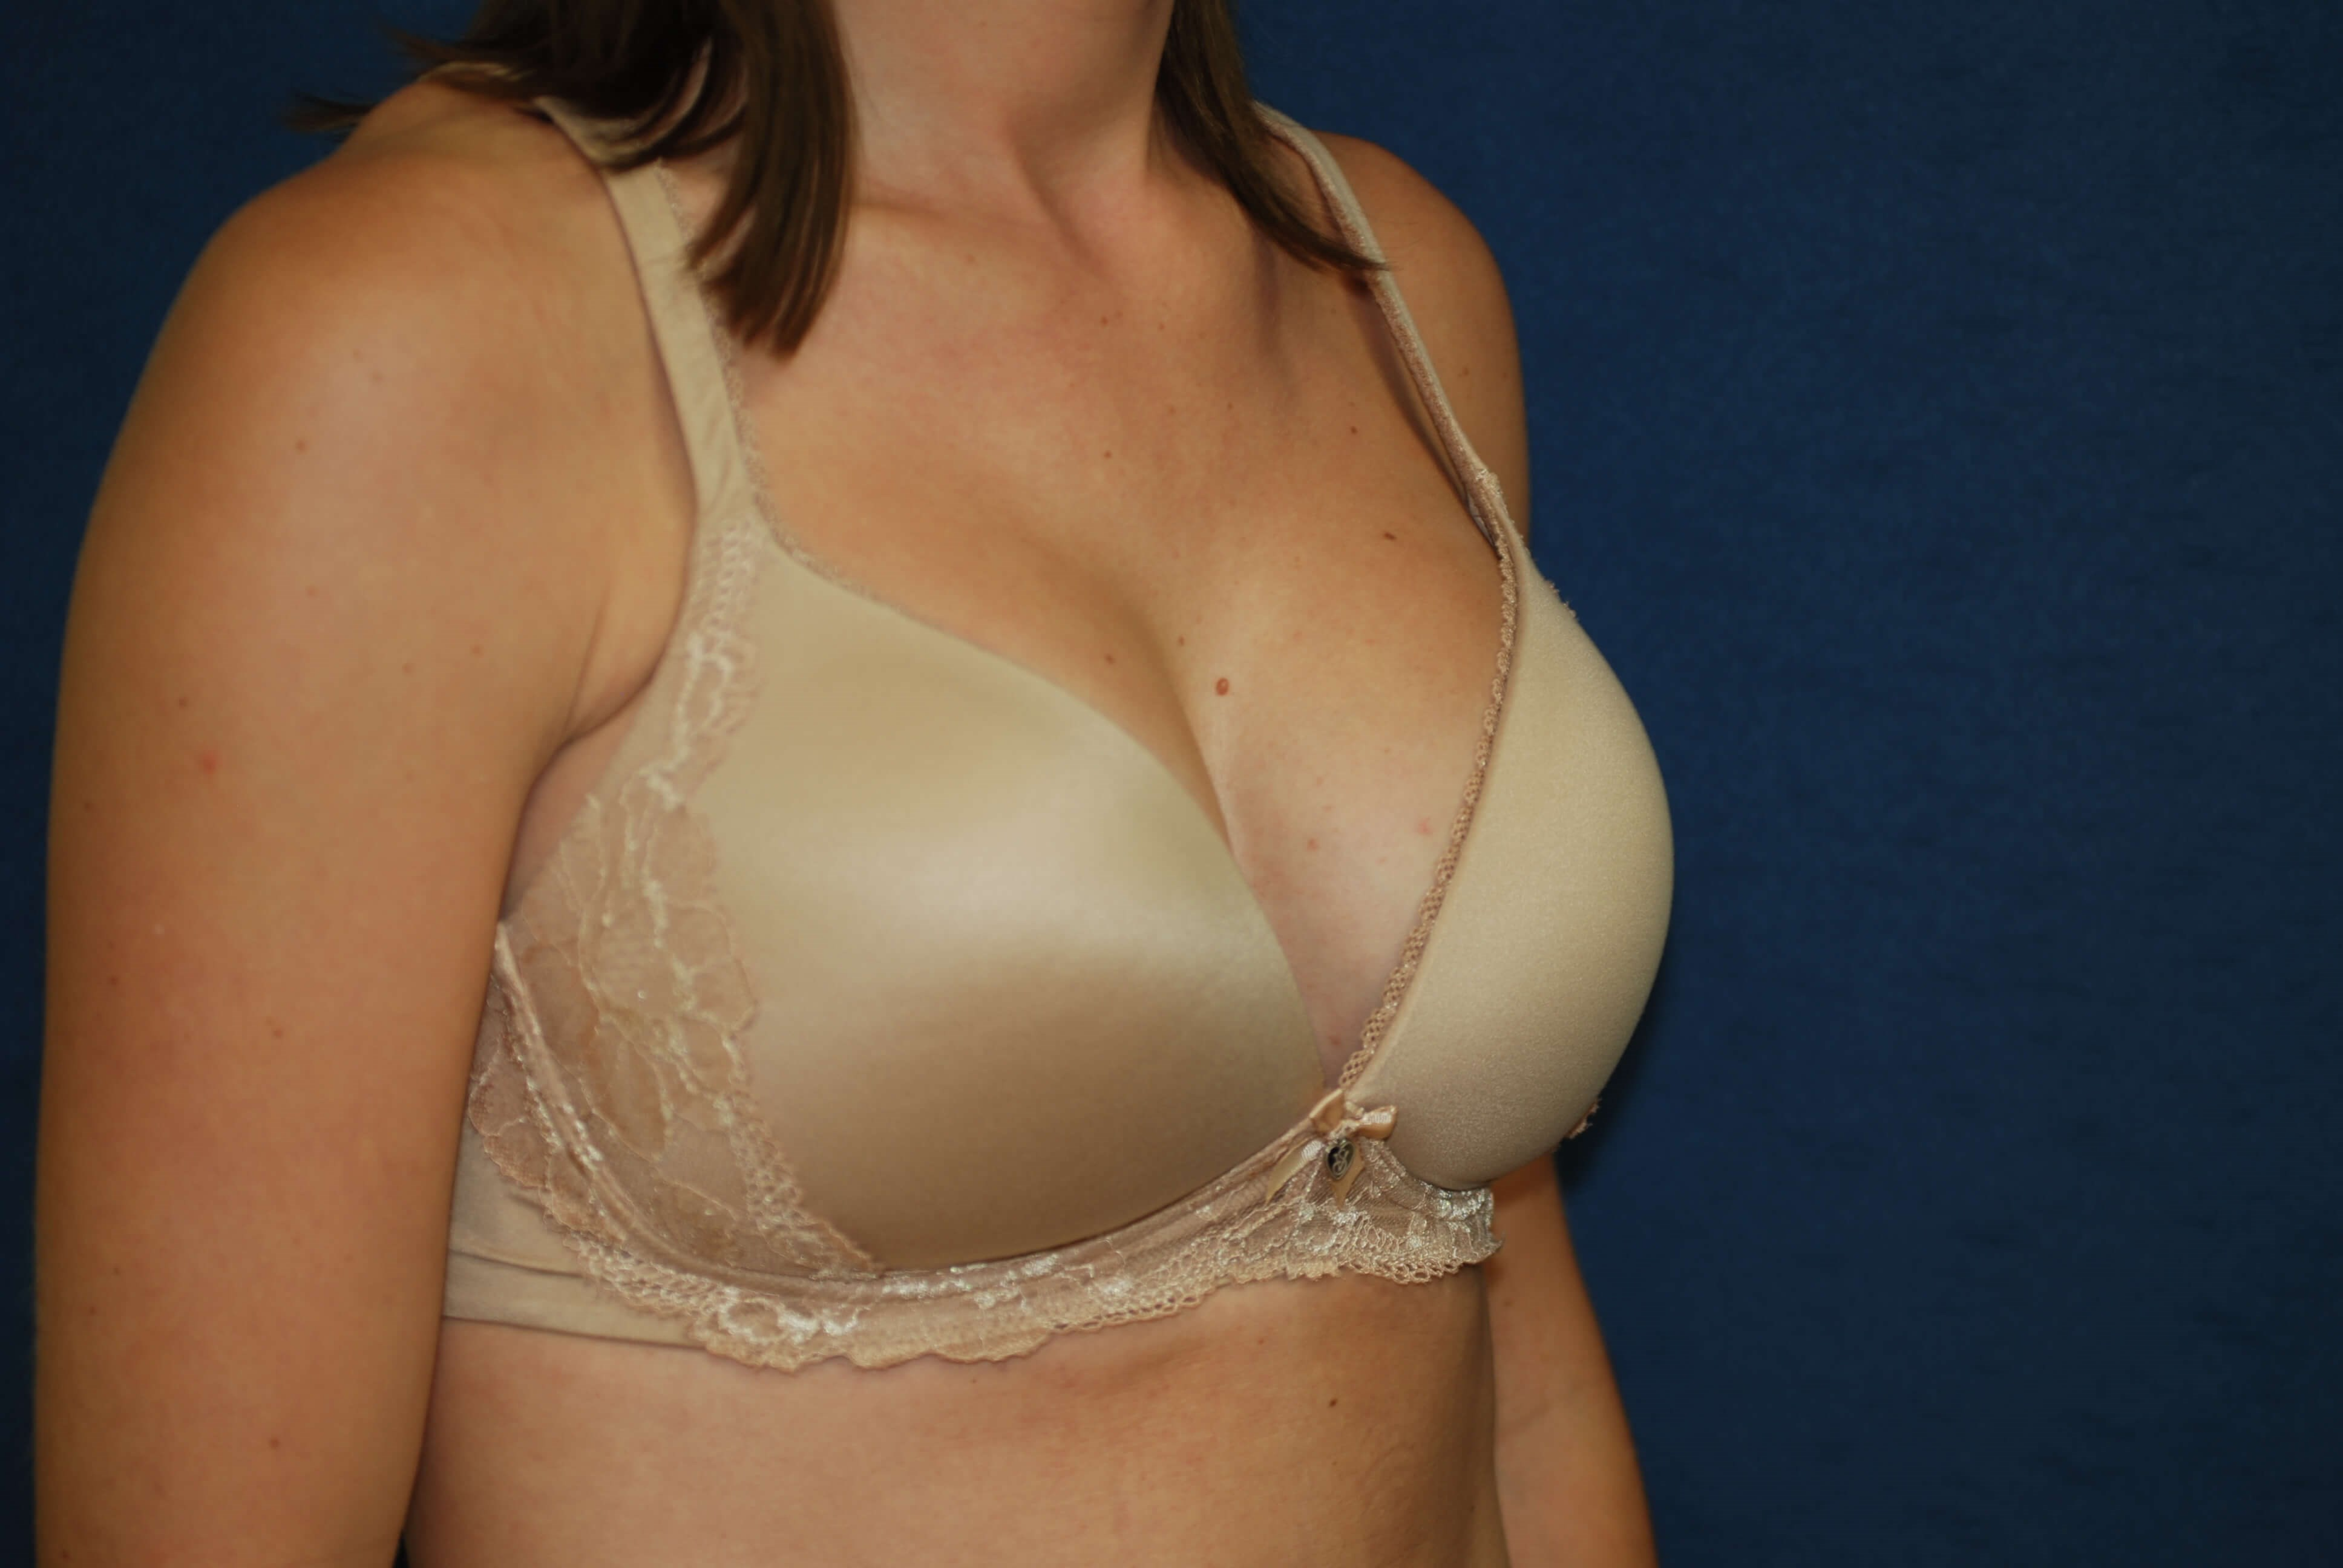 With Bra After- oblique view in bra